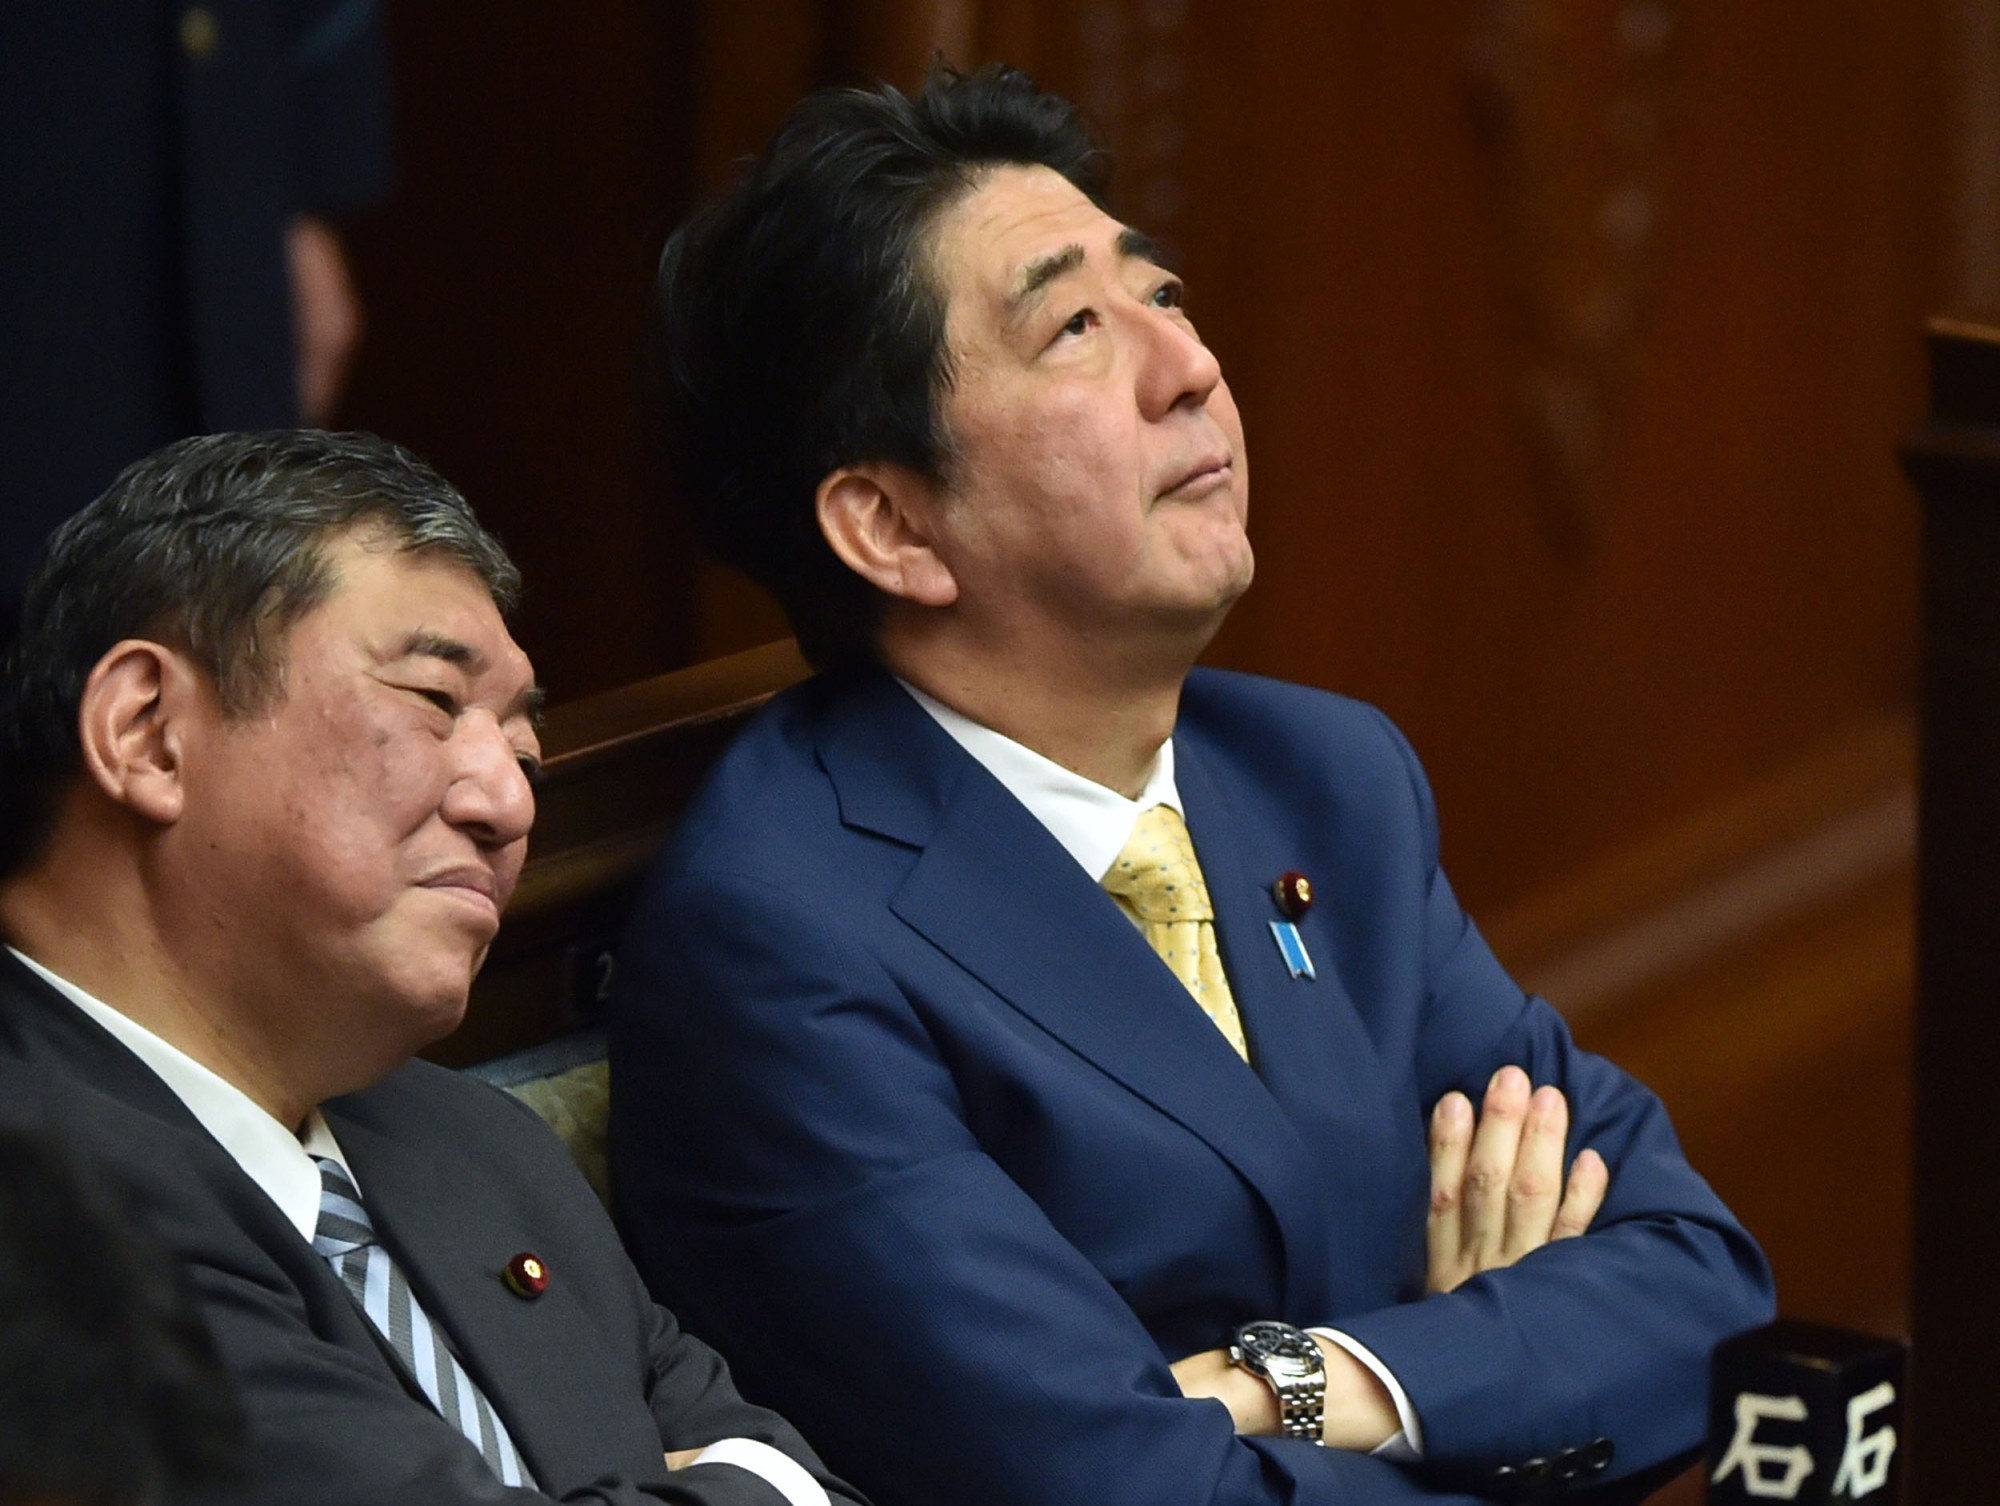 Shigeru Ishiba, a former state minister for regional revitalization, faces an uphill battle in his bid to replace Prime Minister Shinzo Abe as president of the Liberal Democratic Party. | AFP-JIJI